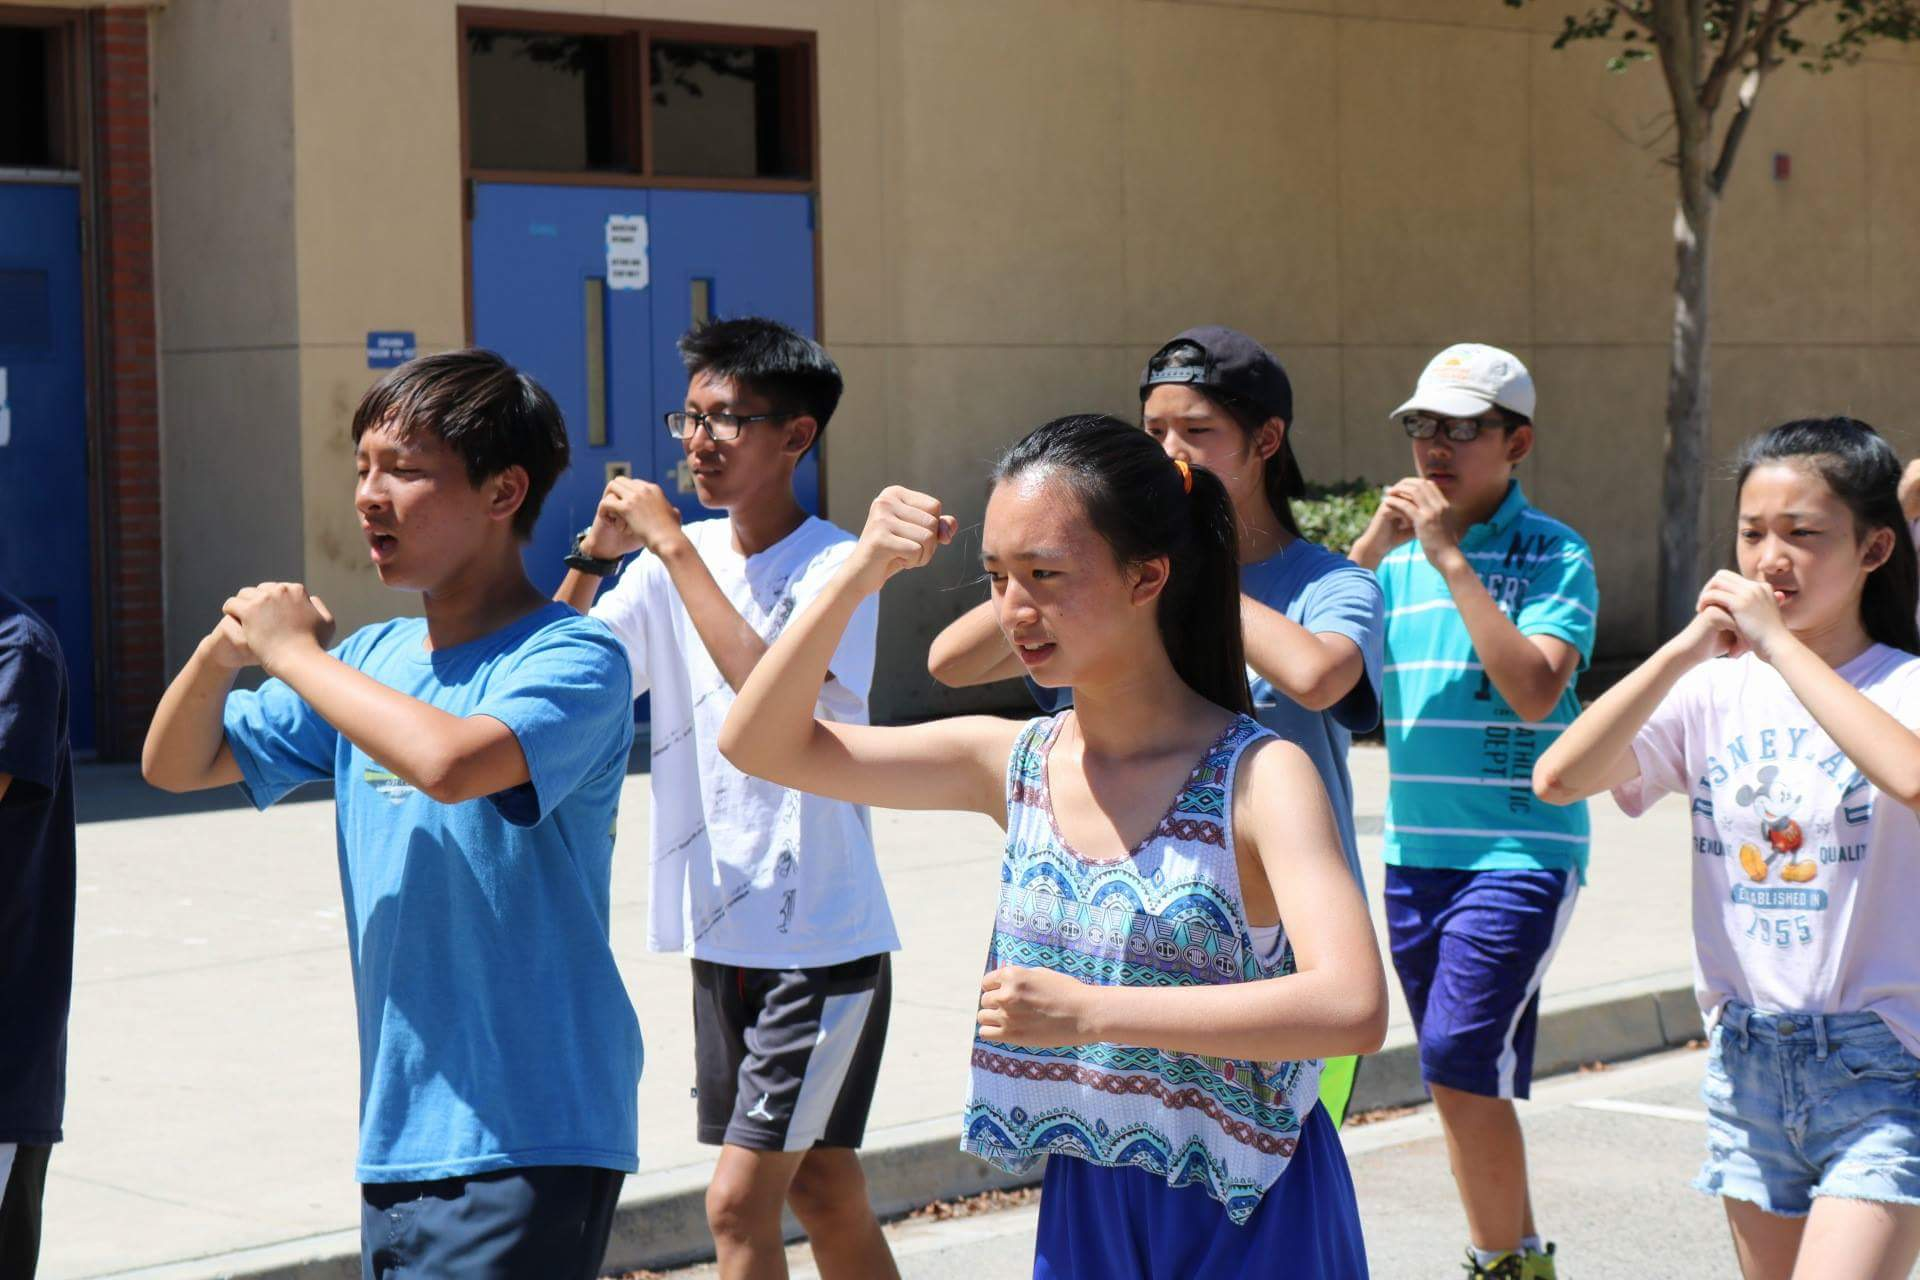 Band camp helps students grow musically